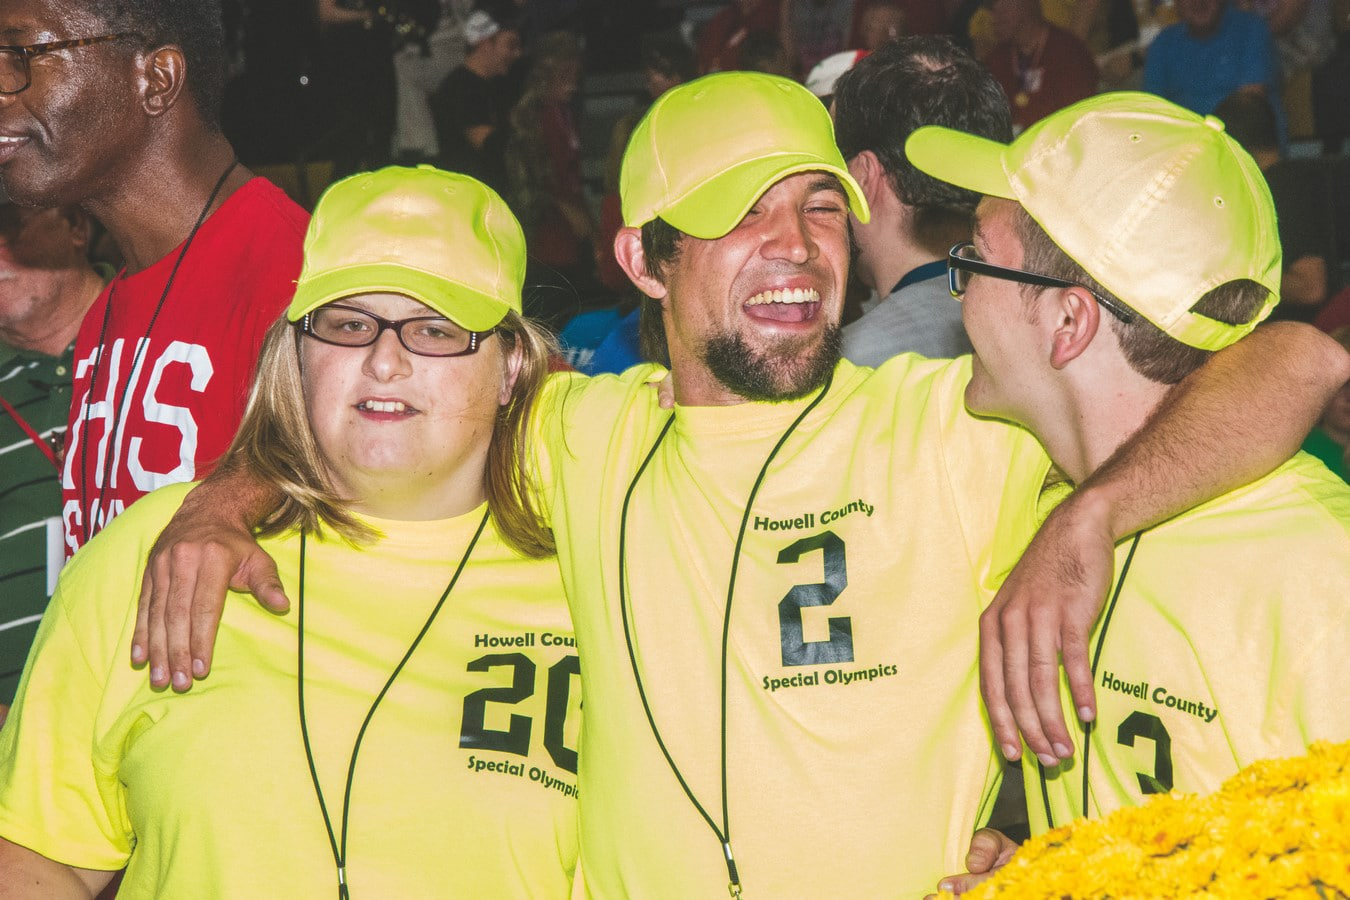 Three athletes from Howell County in bright yellow shirts smile at one another with arms around one another